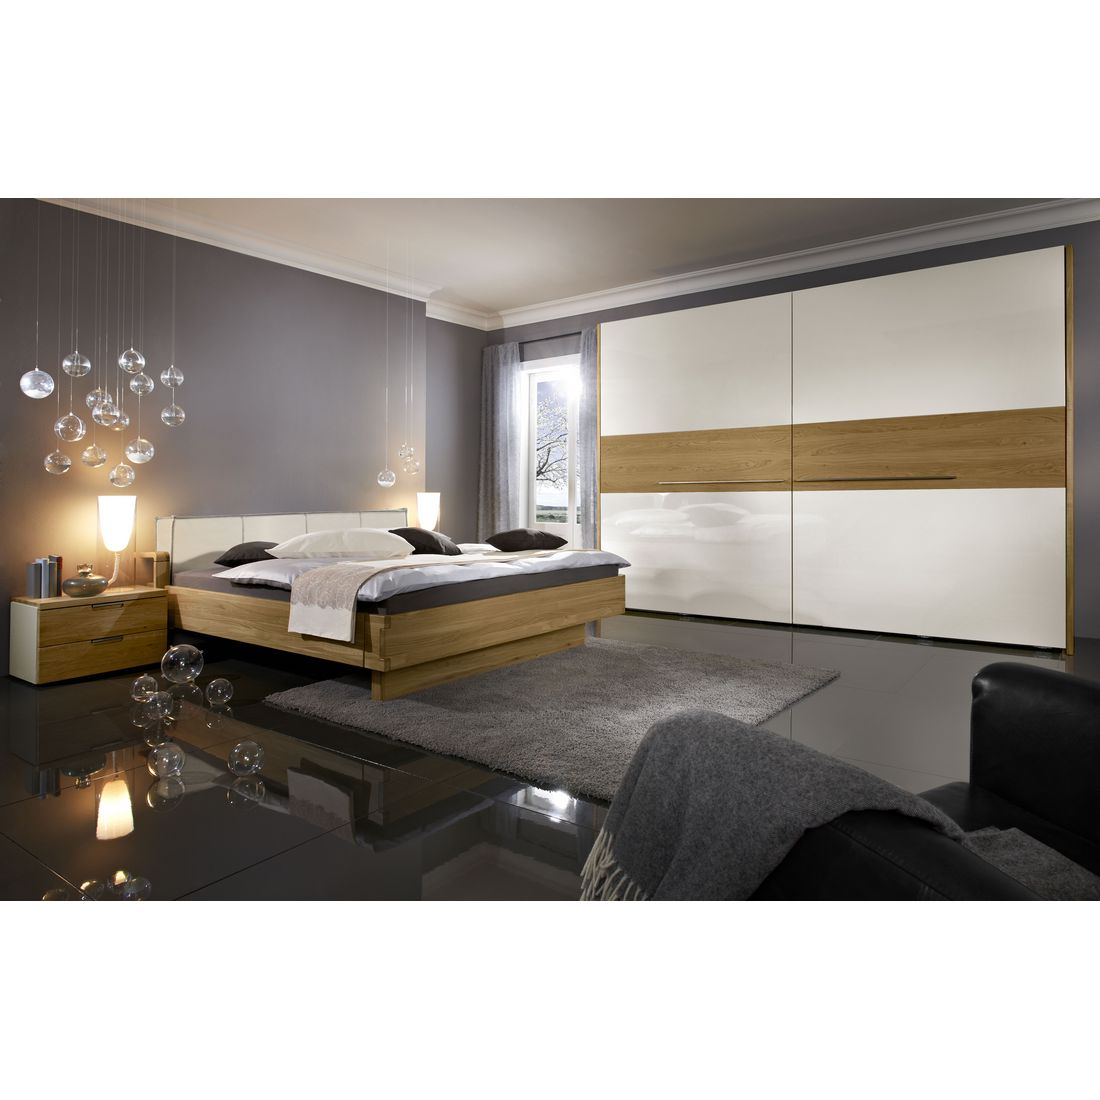 schlafzimmer maximum natur echtholz funier eiche struktur 200x200 loddenkemper online. Black Bedroom Furniture Sets. Home Design Ideas